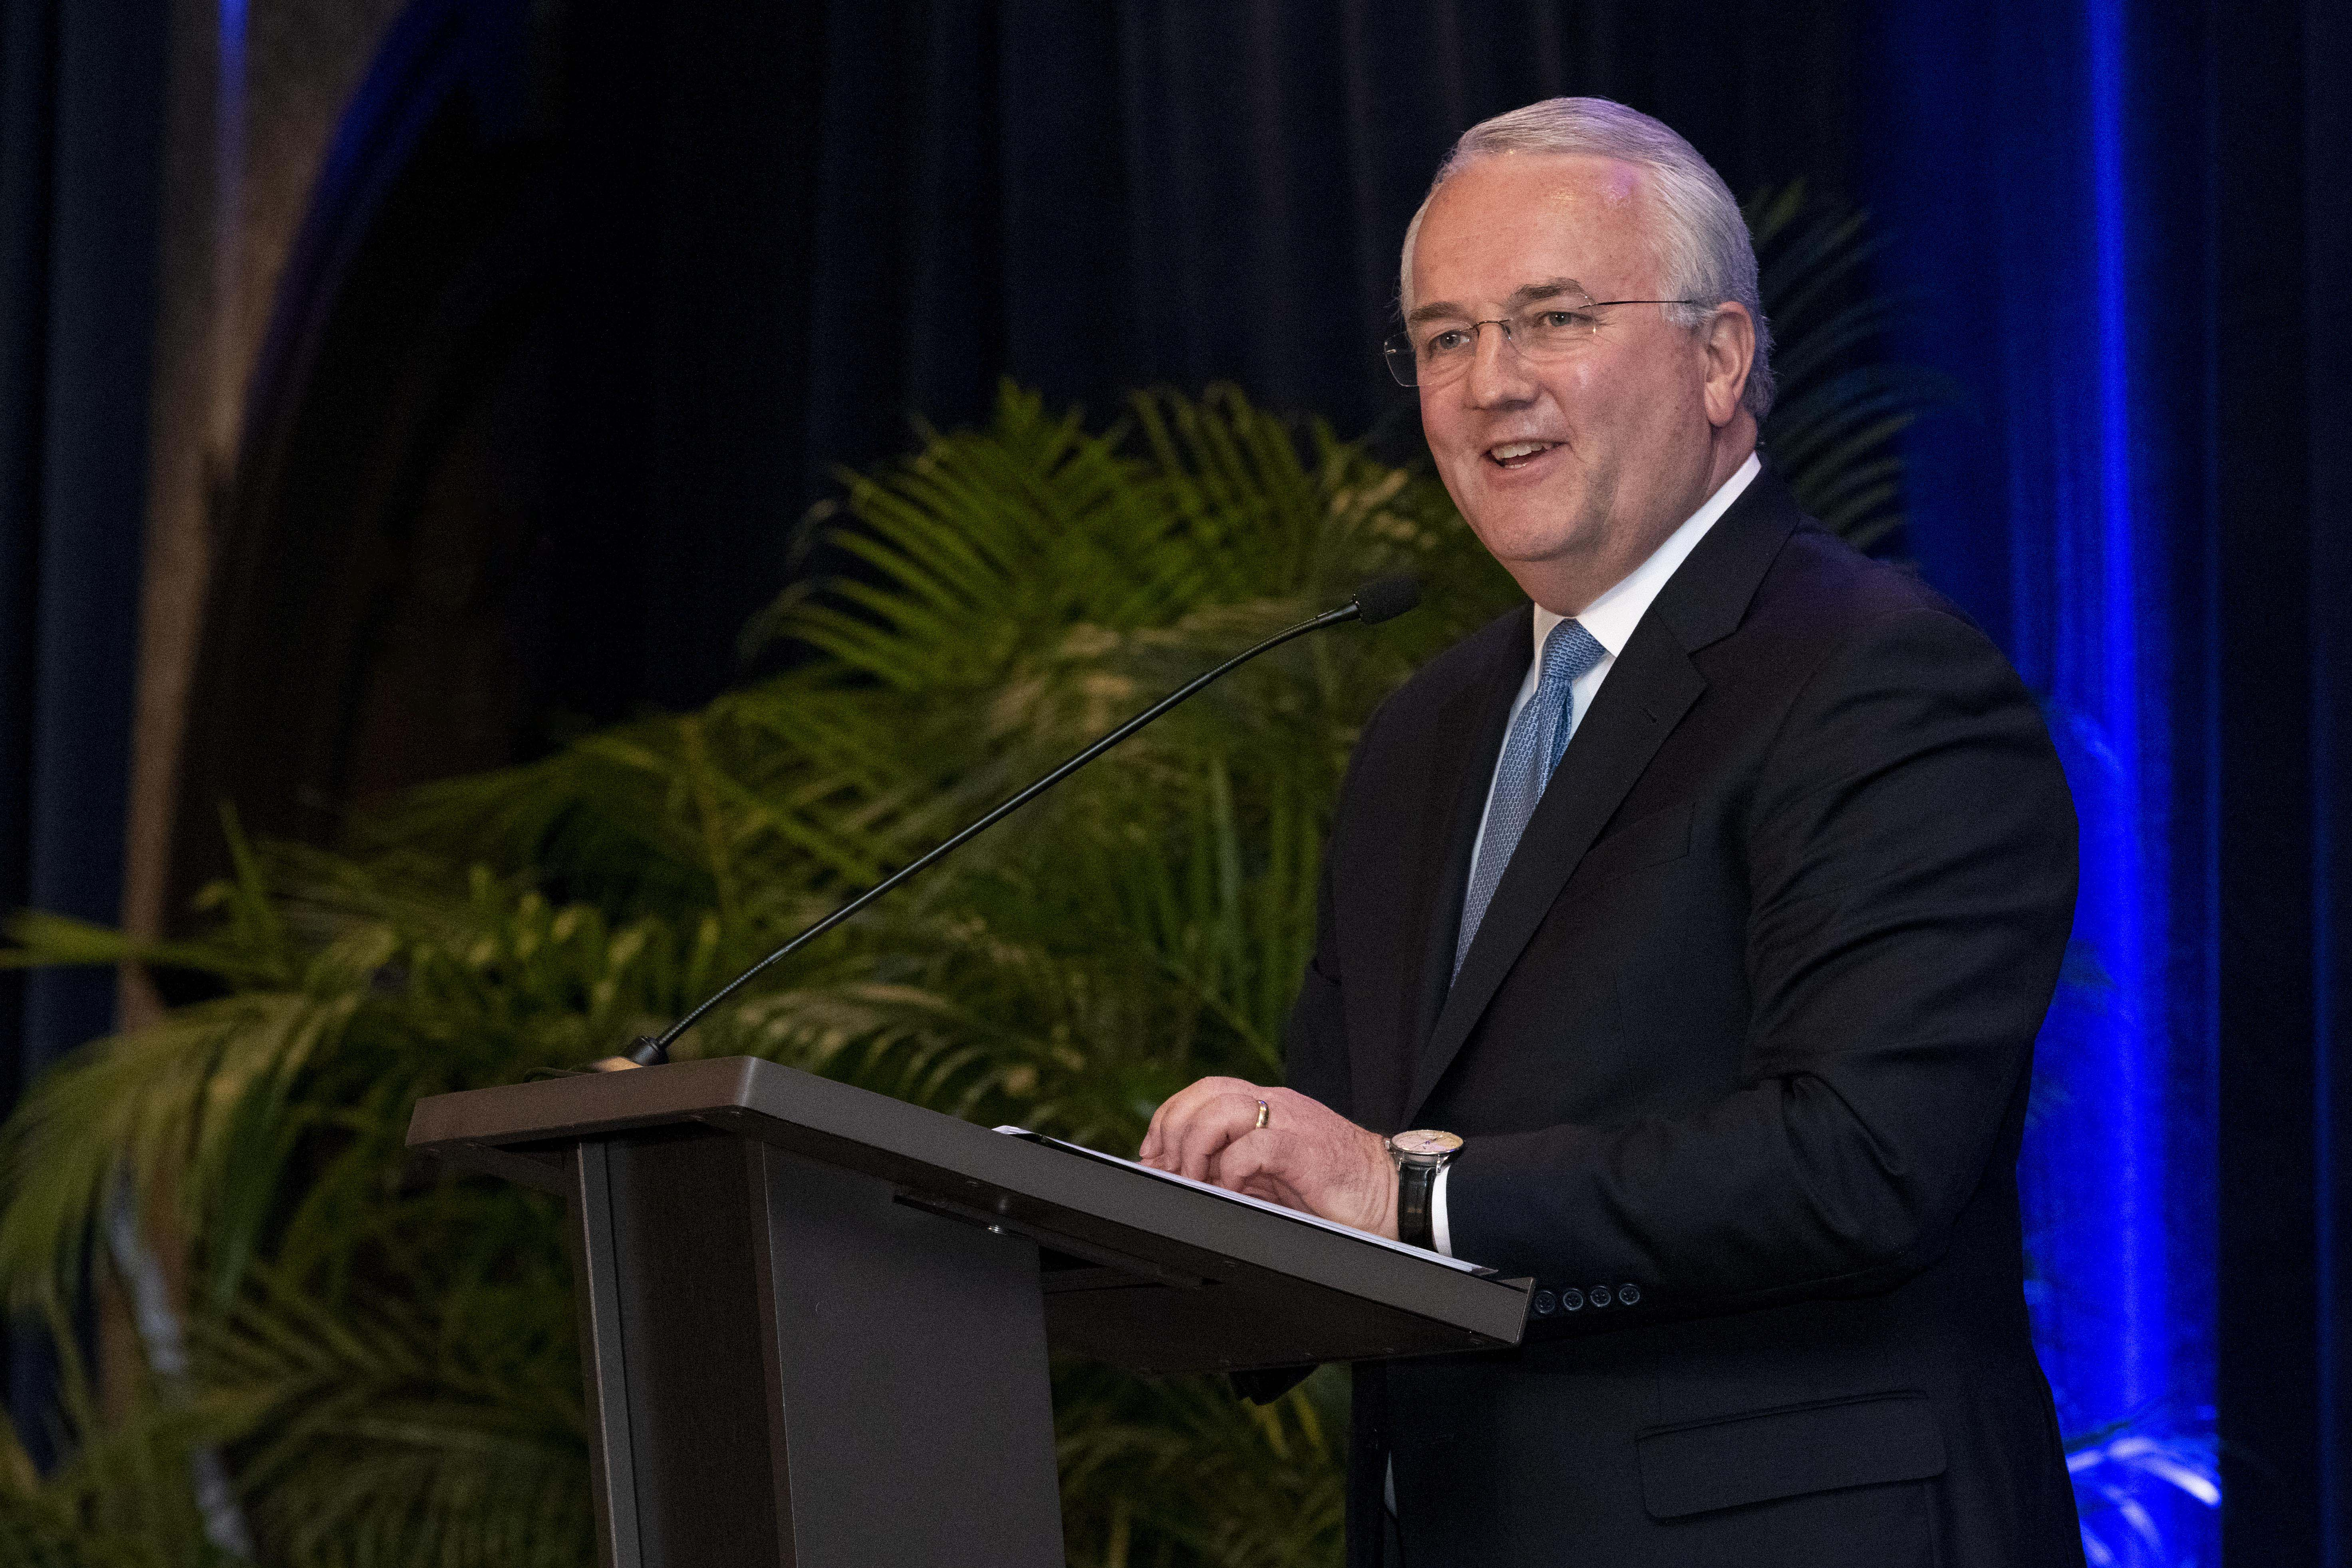 Elder Jack N. Gerard, General Authority Seventy, gives remarks at the BYU Management Society event in Washington, D.C., May 11, 2019.